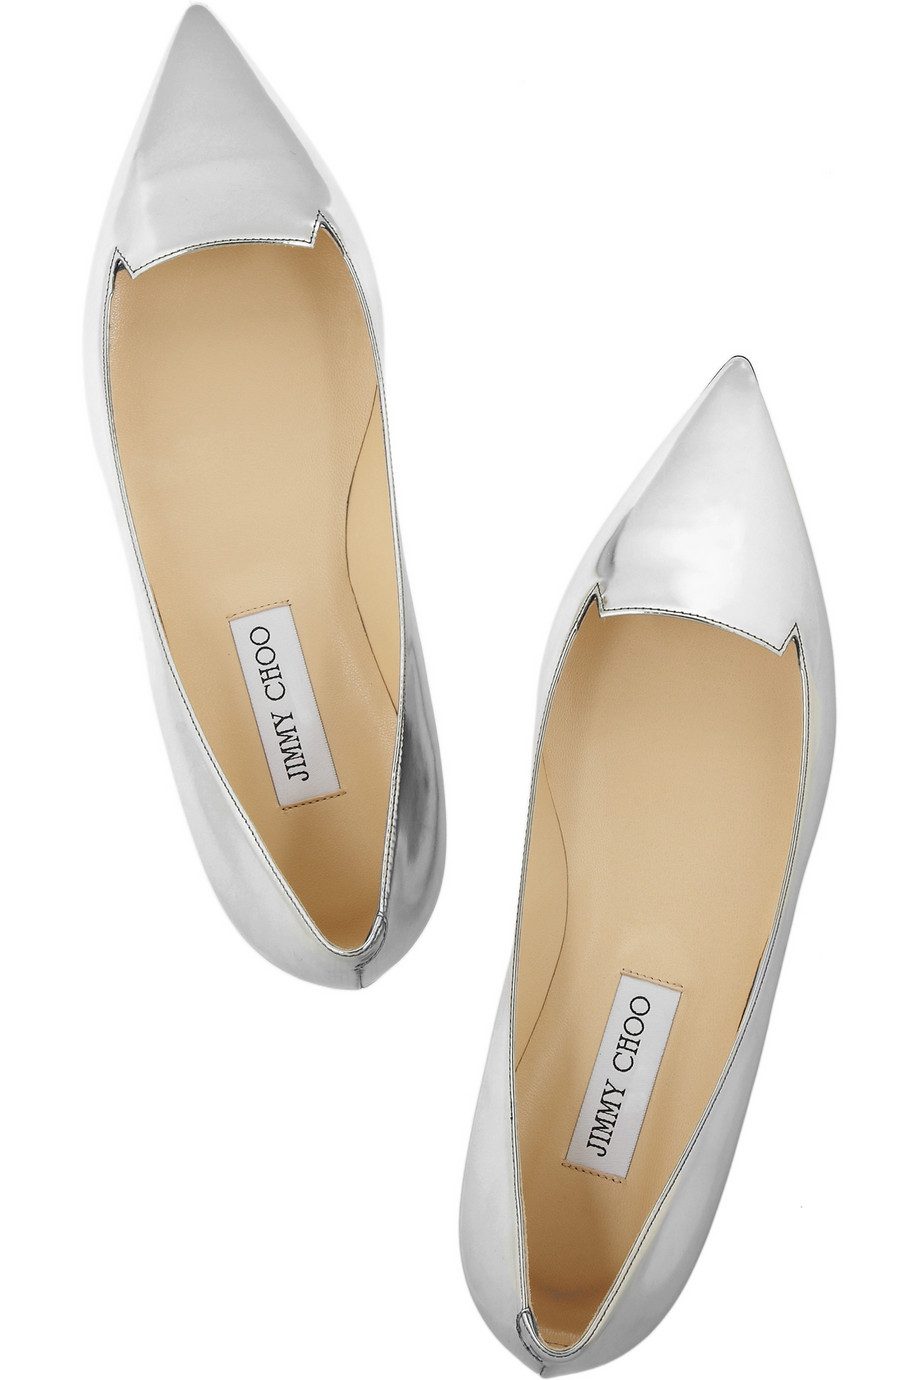 Reiss Shoes Sizing